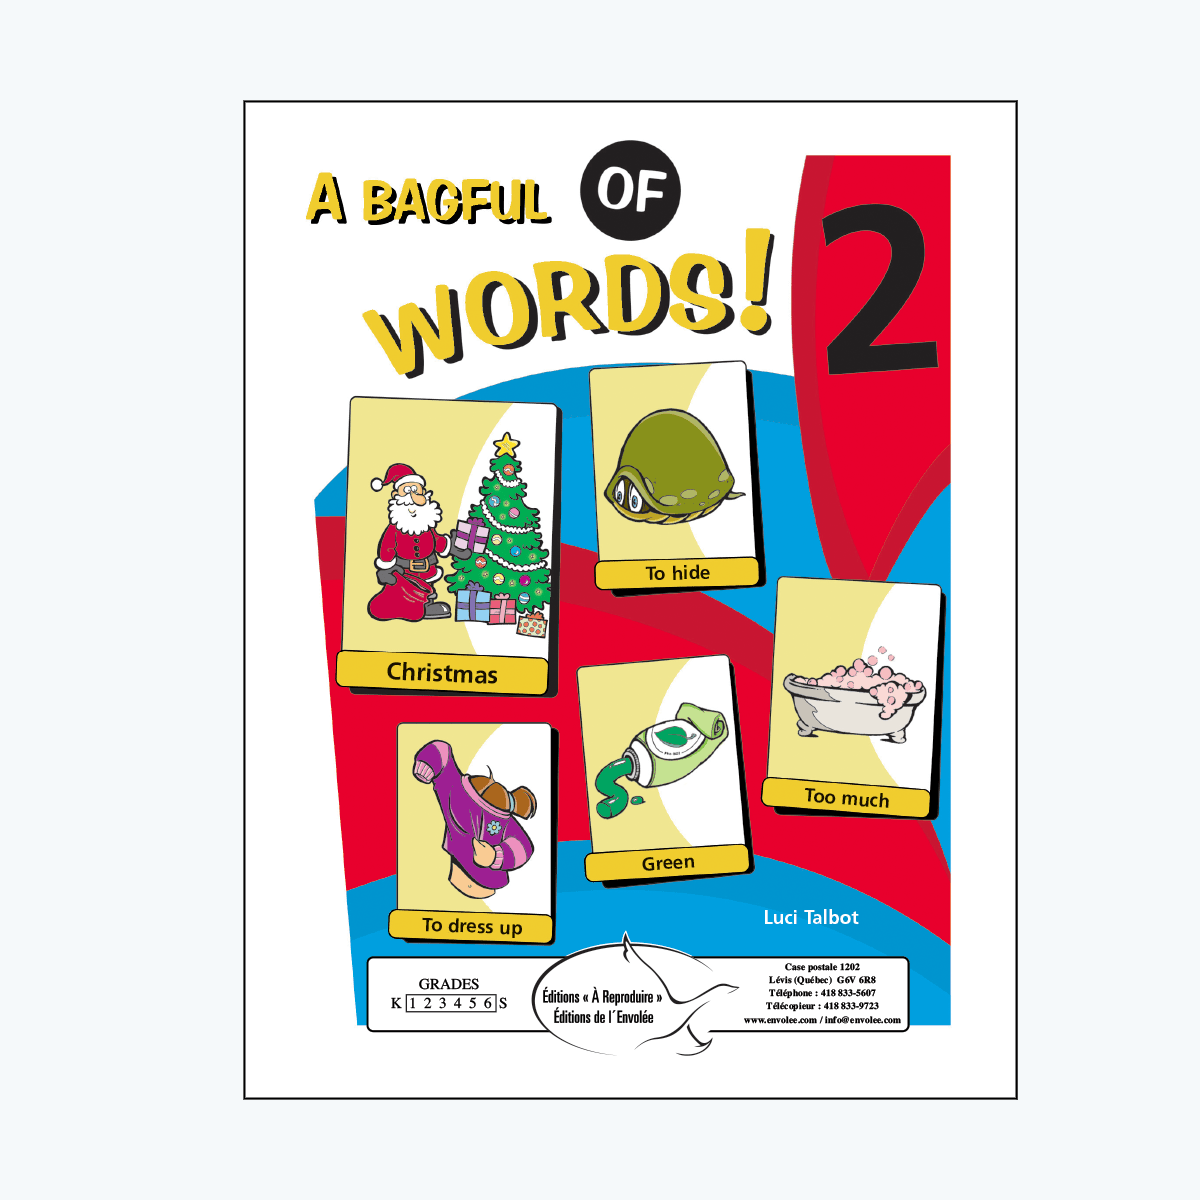 A Bagful of Words! volume 2